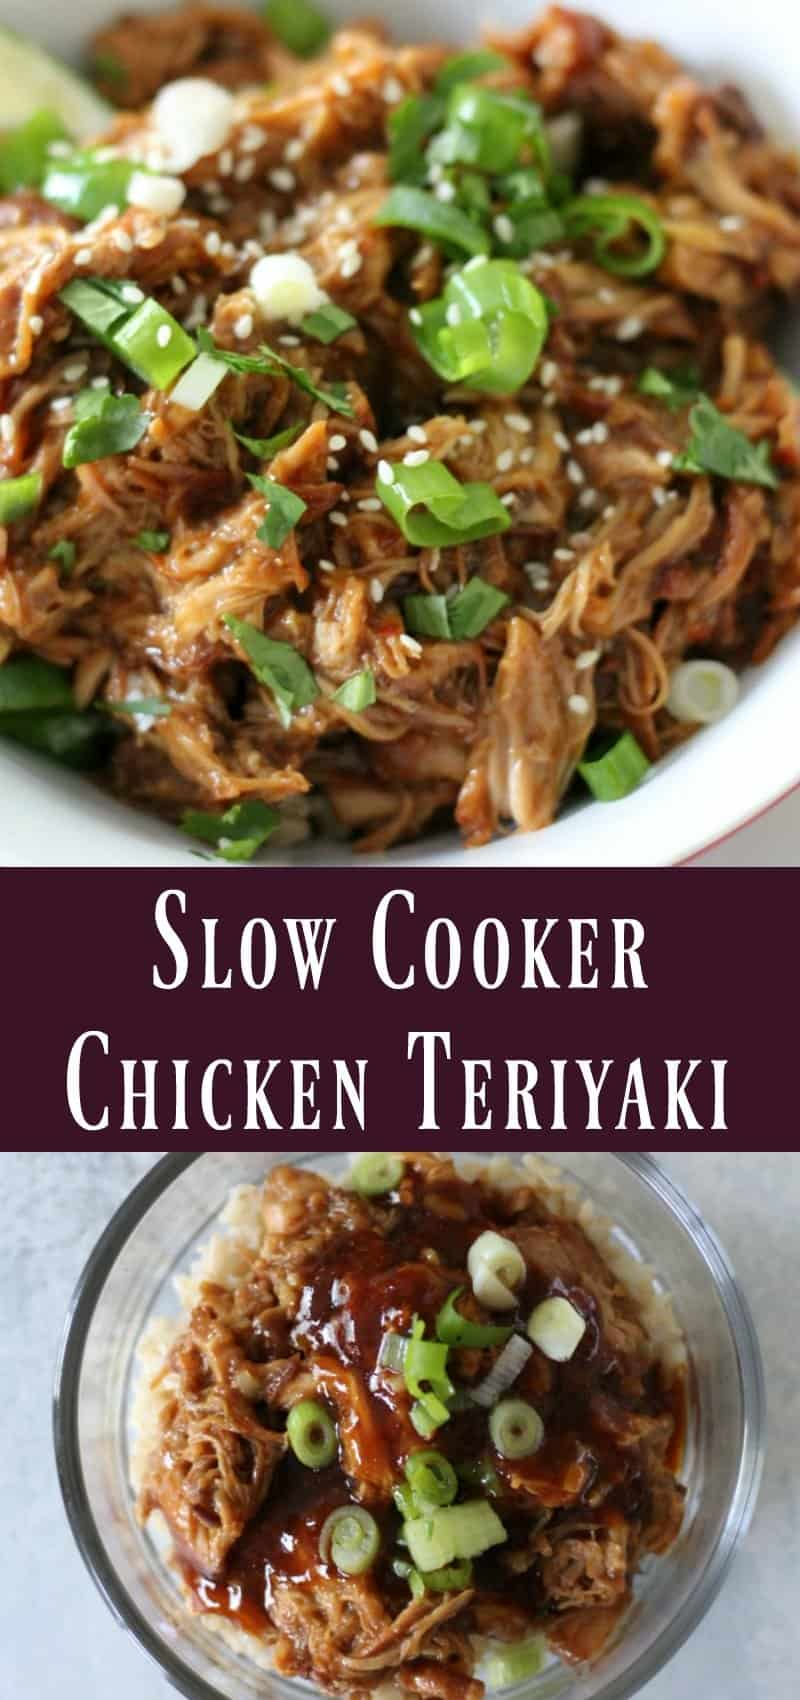 Healthy Slow Cooker Chicken Teriyaki Recipe